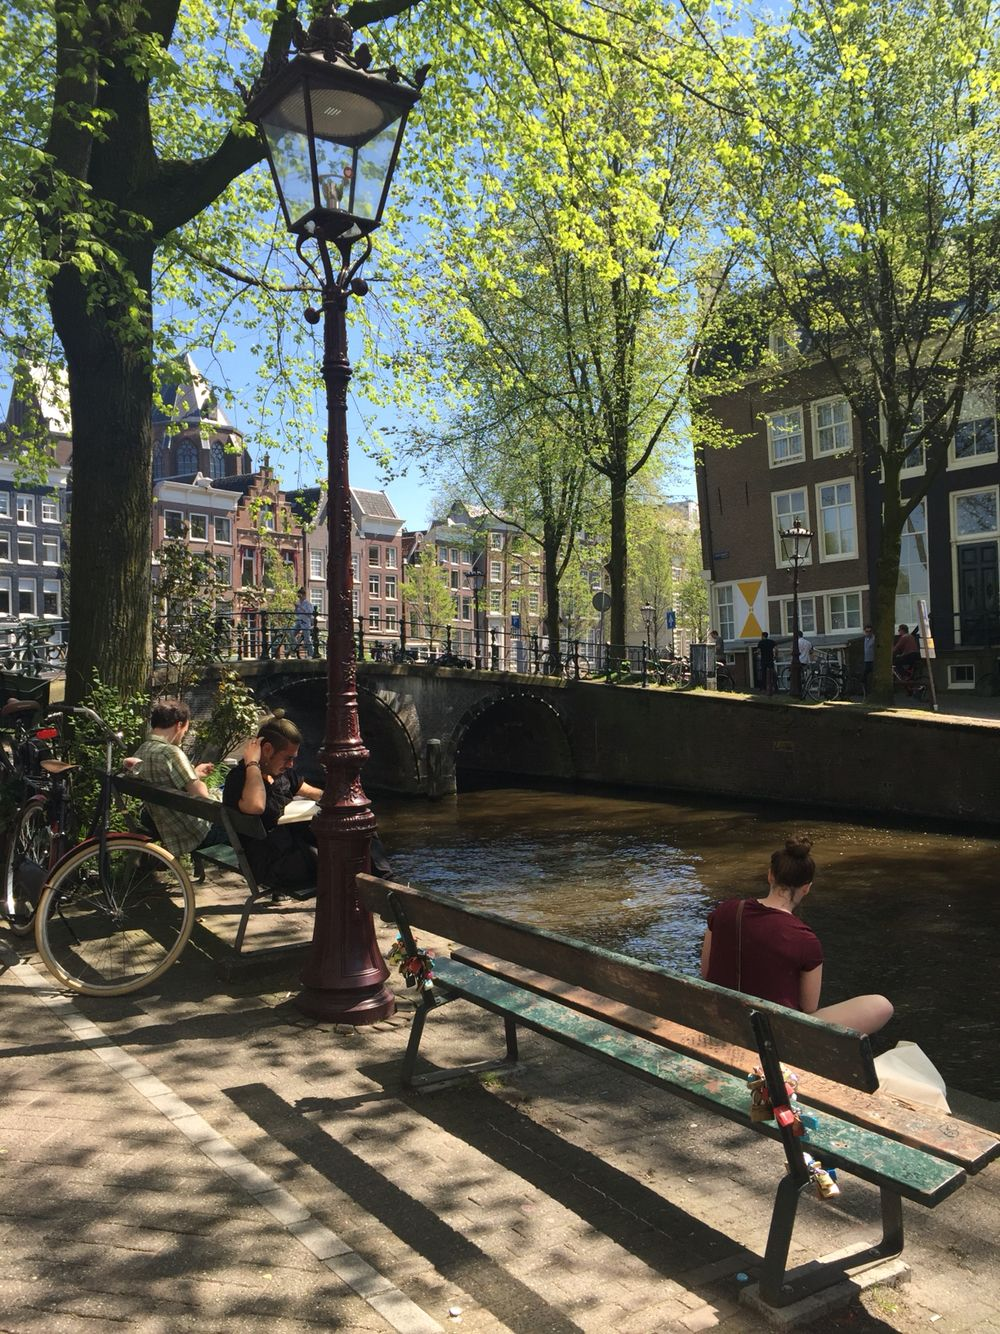 Bankje The Fault In Our Stars.Amsterdam The Fault In Our Stars Bench 08 05 2016 Traveling In